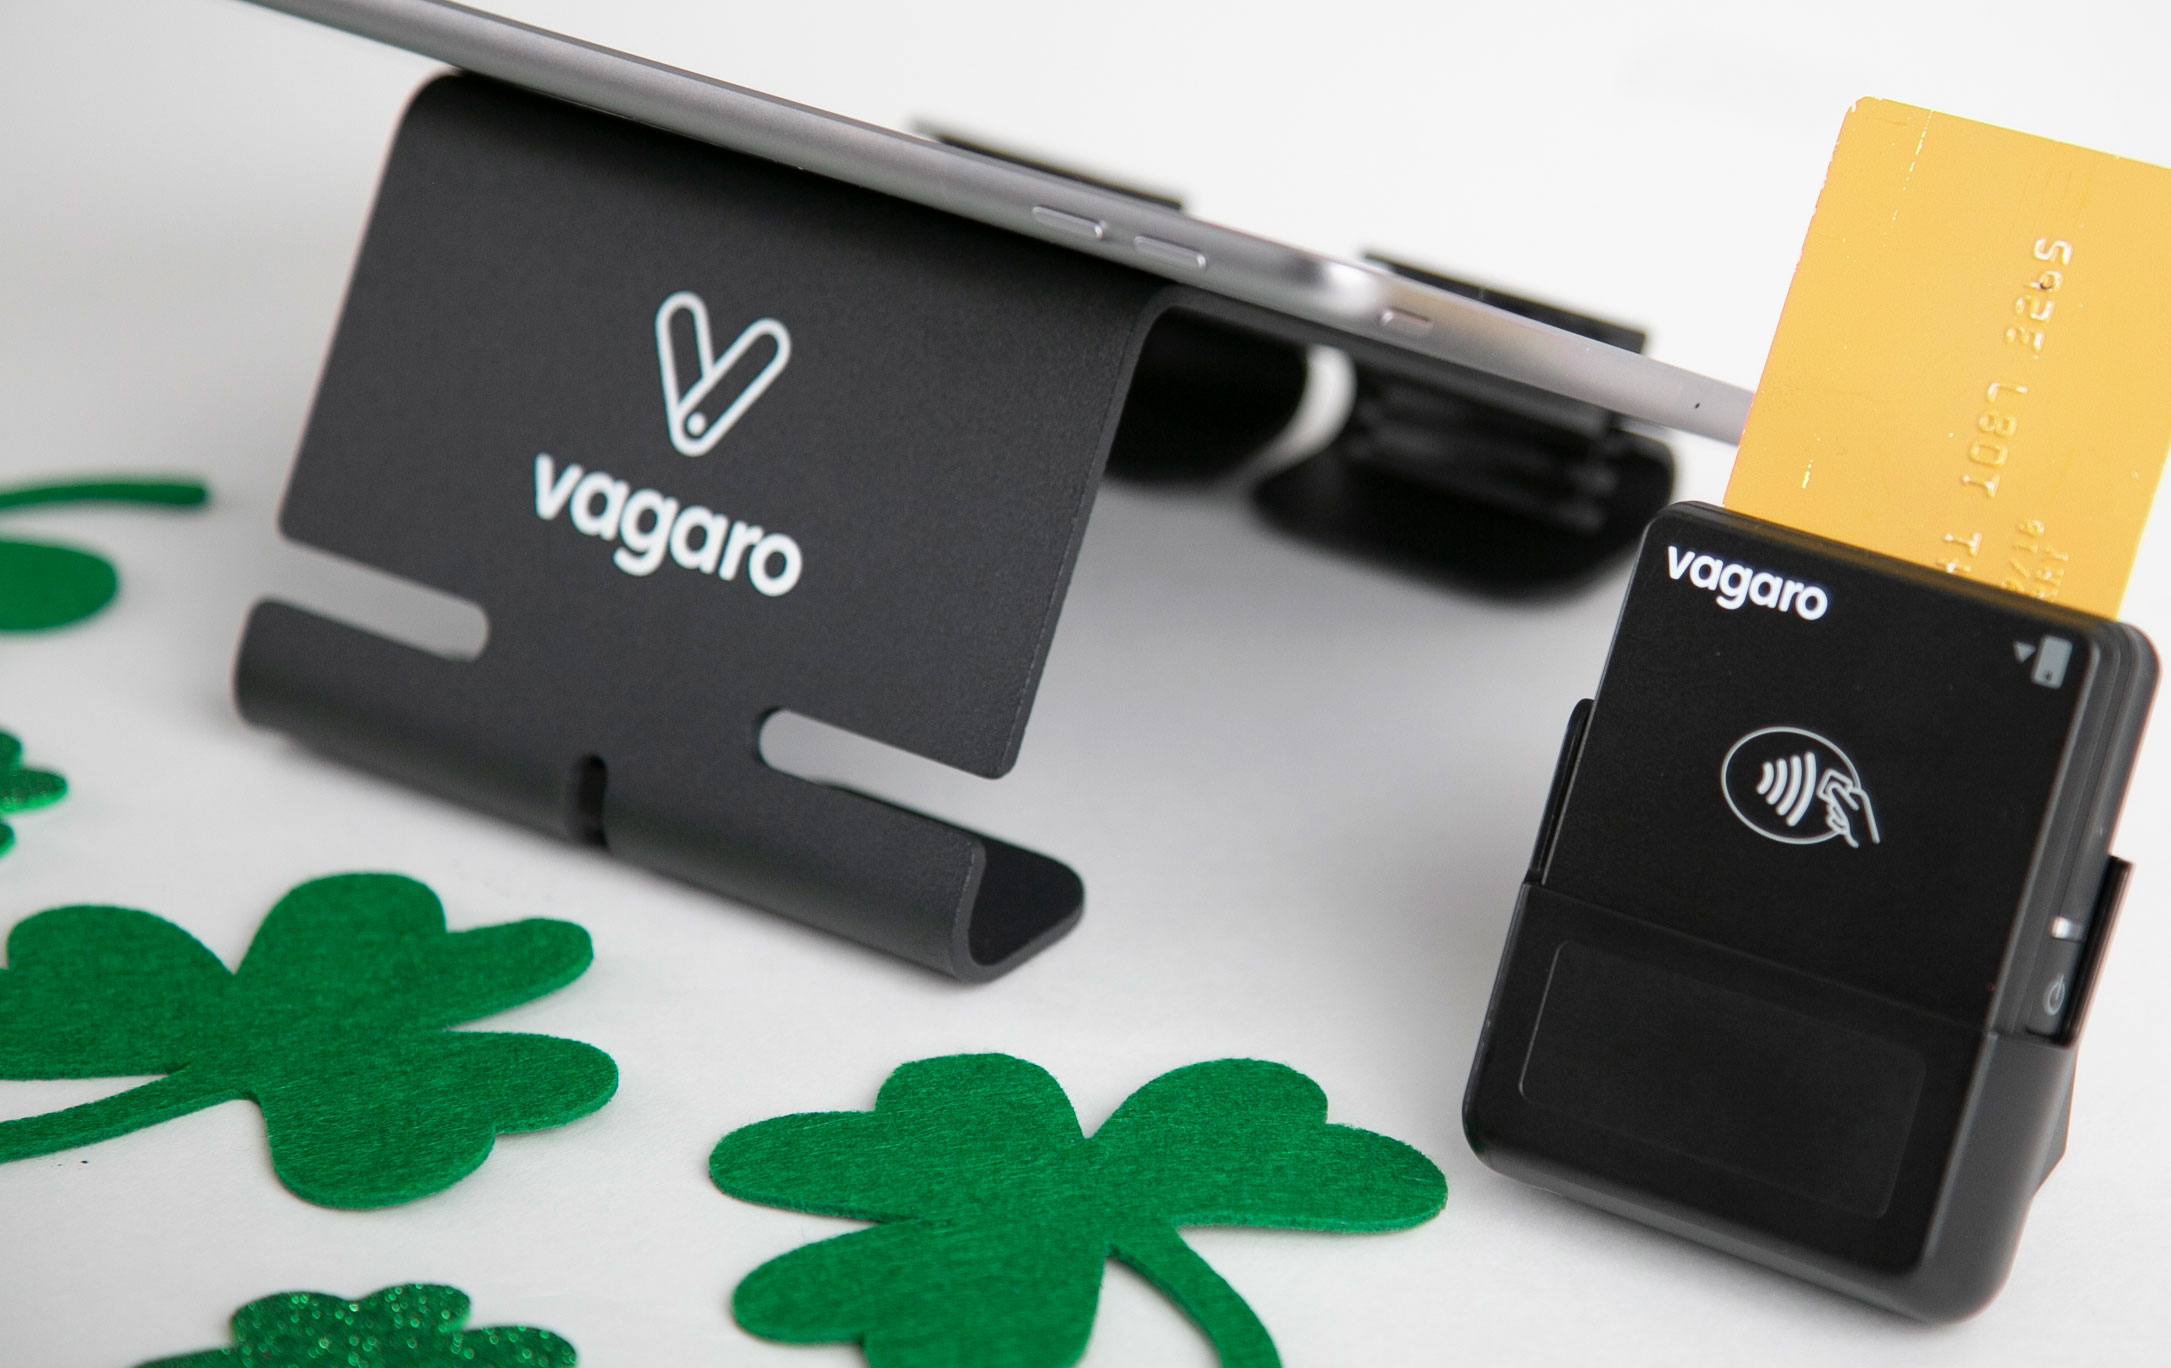 Test Your Luck — Enter the Vagaro St. Patrick's Day Contest